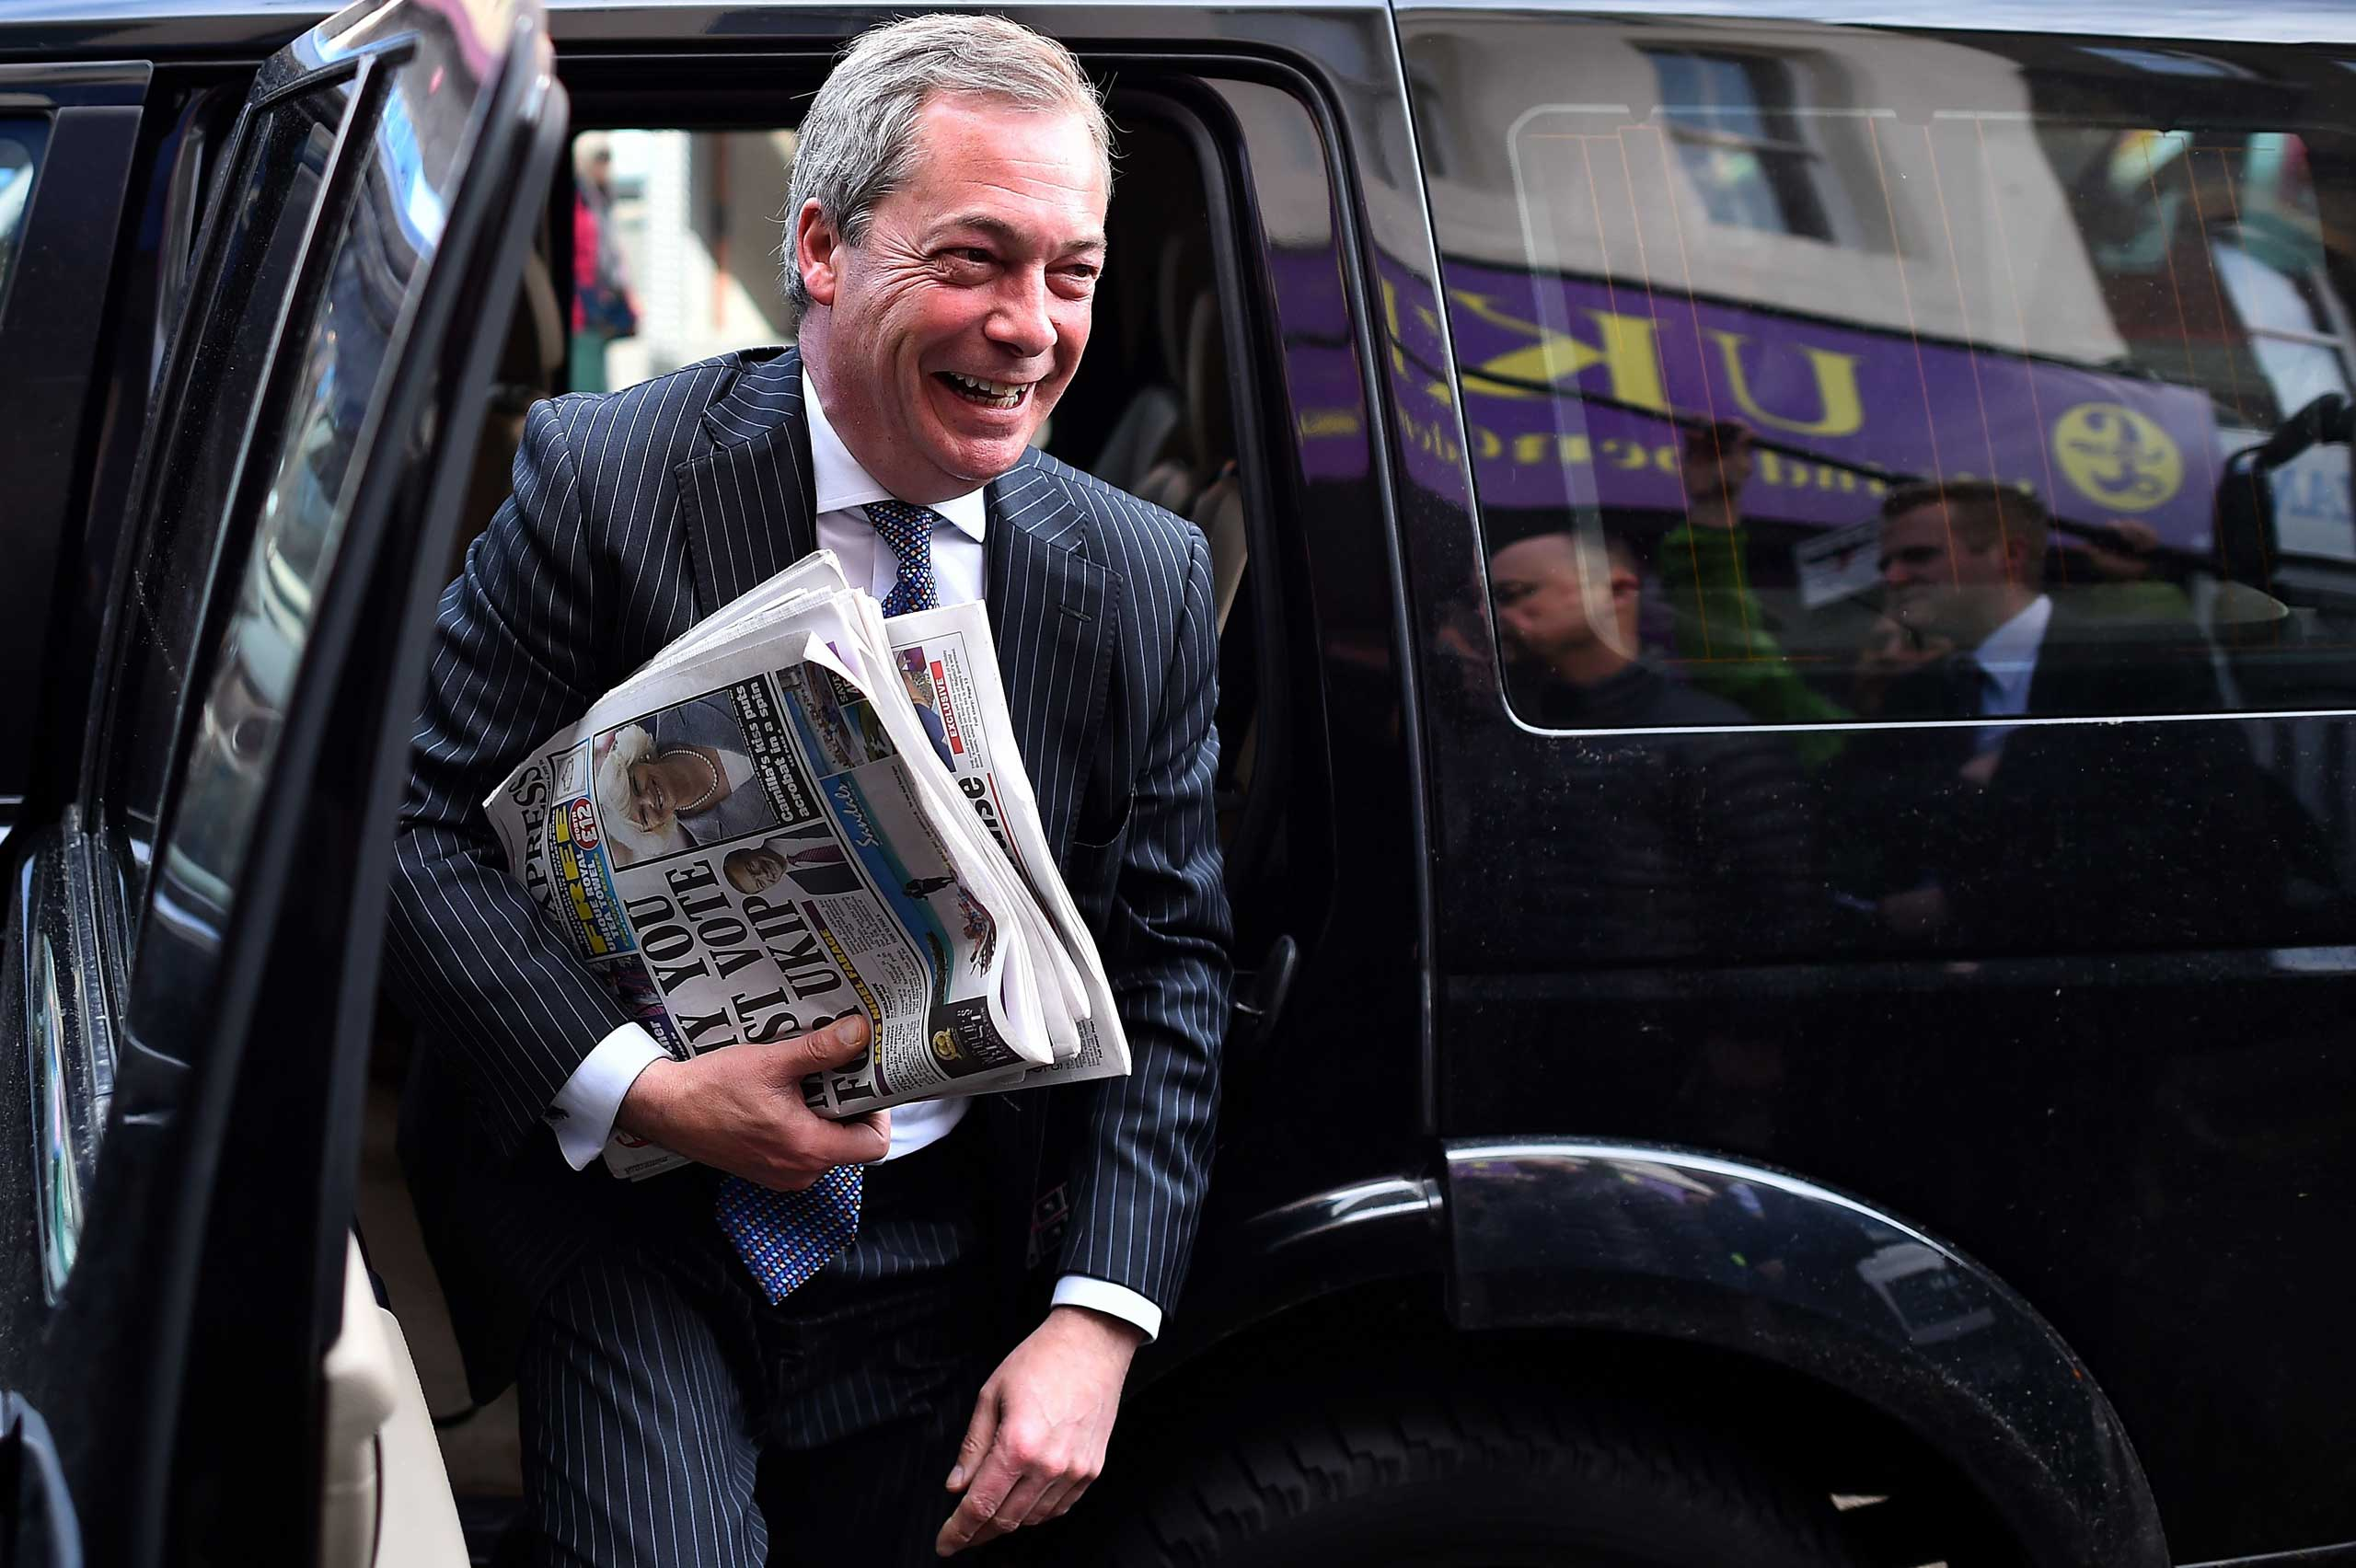 UK Independence Party leader Nigel Farage arrives for a campaign visit in Ramsgate in south east England on May 6, 2015, on the eve of a general election in Britain.